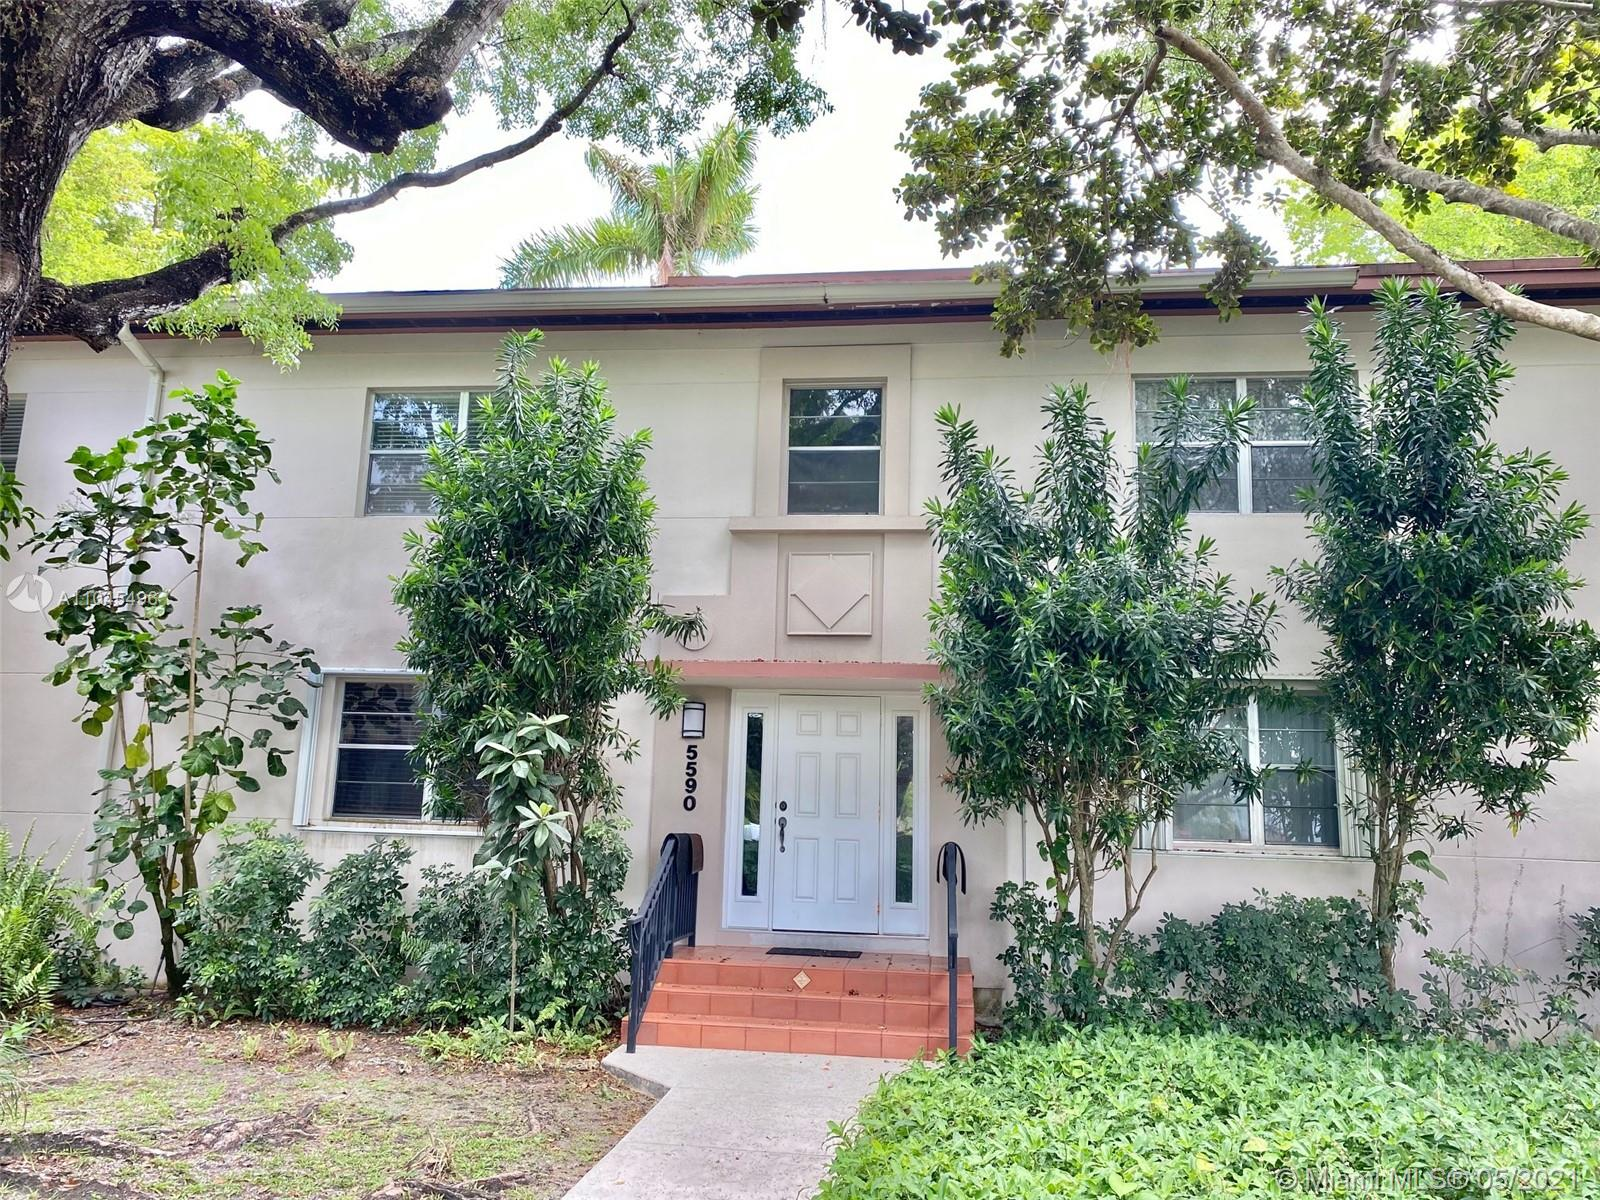 Private sought-after Pathways 2-bedroom/ 1-bath condo. This is a 2nd floor, very quiet, bright, corner unit with a view of the pool and yard. Back door to direct access to the gated courtyard and pool with walking paths, BBQ areas. Beautiful landscaping in this peaceful community. Walking distance to restaurants, supermarkets and shops in South Miami. Close to UM, Metrorail and Coral Gables.